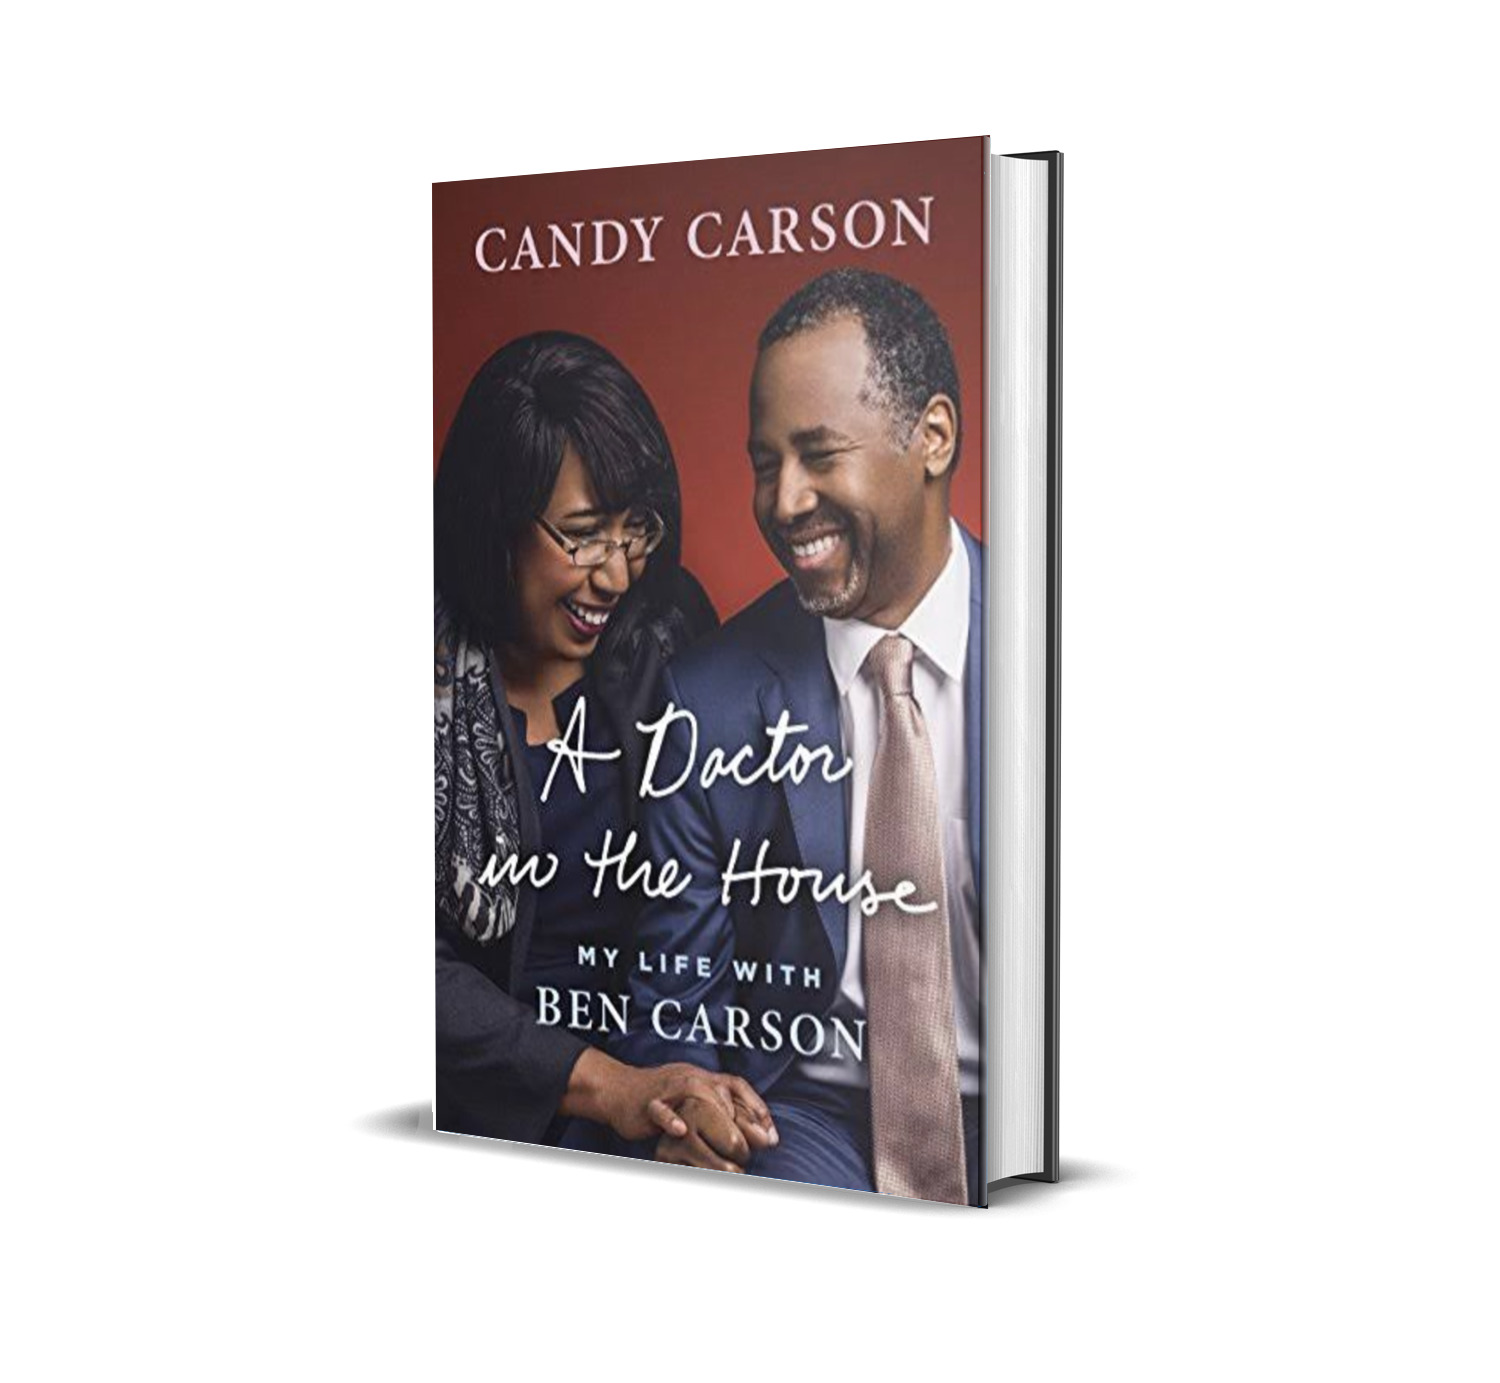 A doctor in the house- Candy Carson